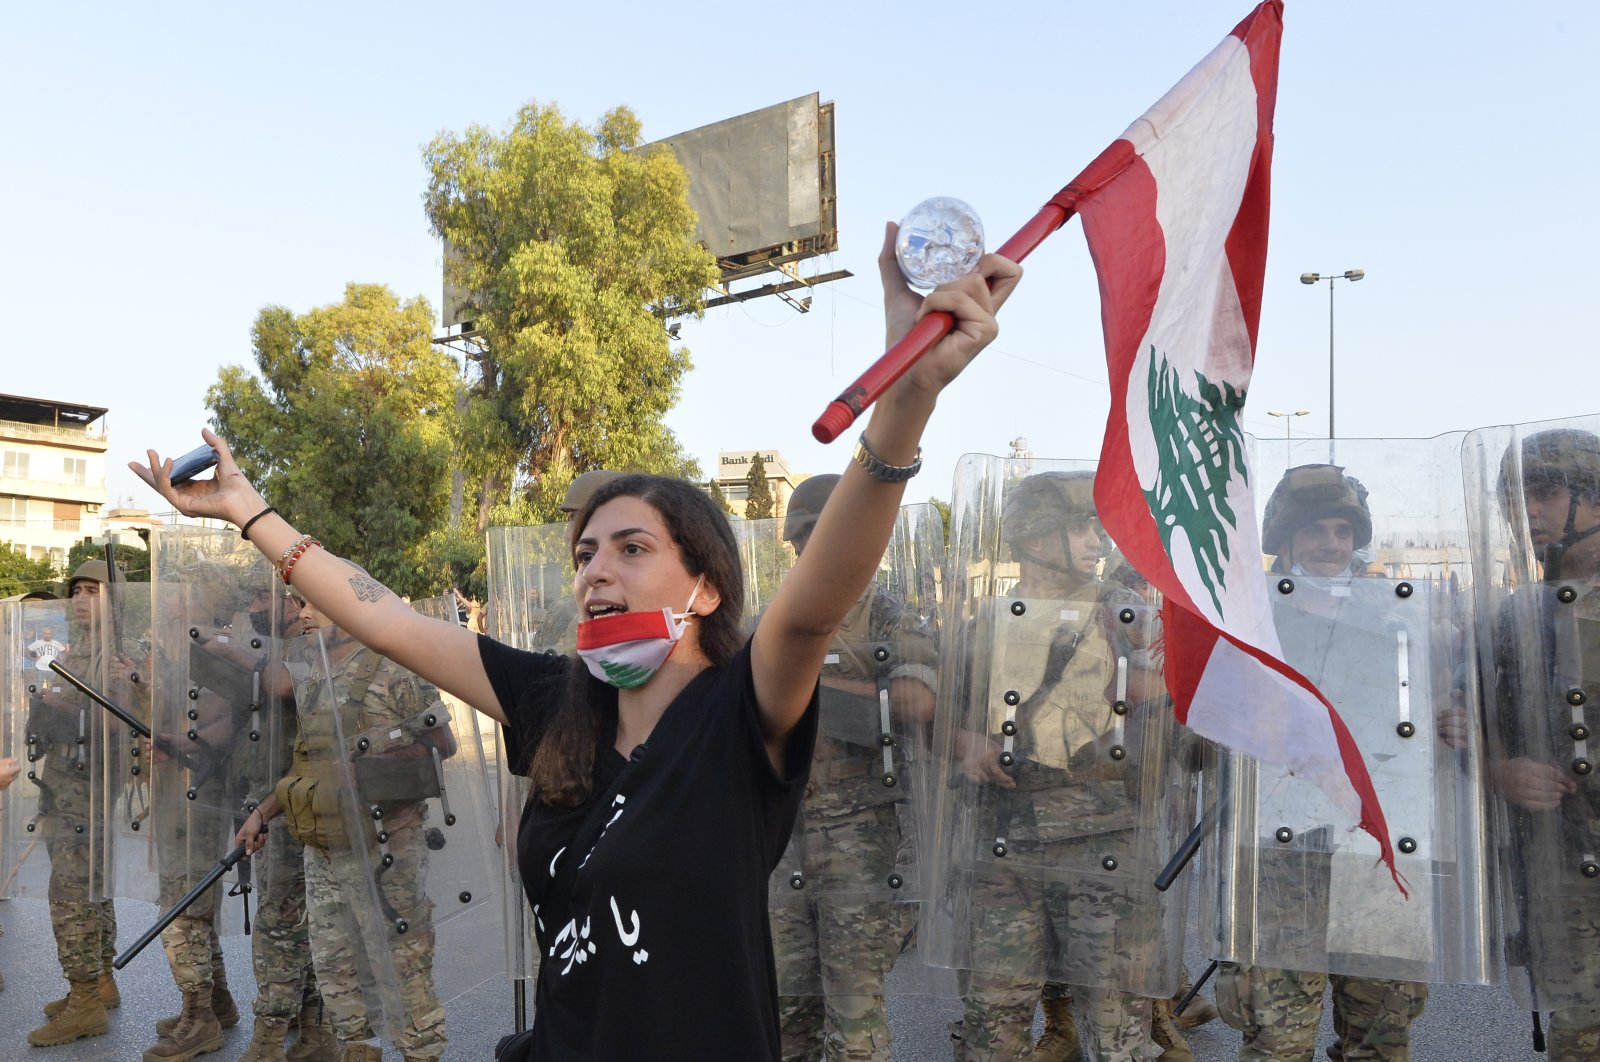 An anti-government protester carries a national flag as she shouts slogans in front of Lebanese army soldiers, Baabda, east Beirut, Sept. 12, 2020. (EPA Photo)